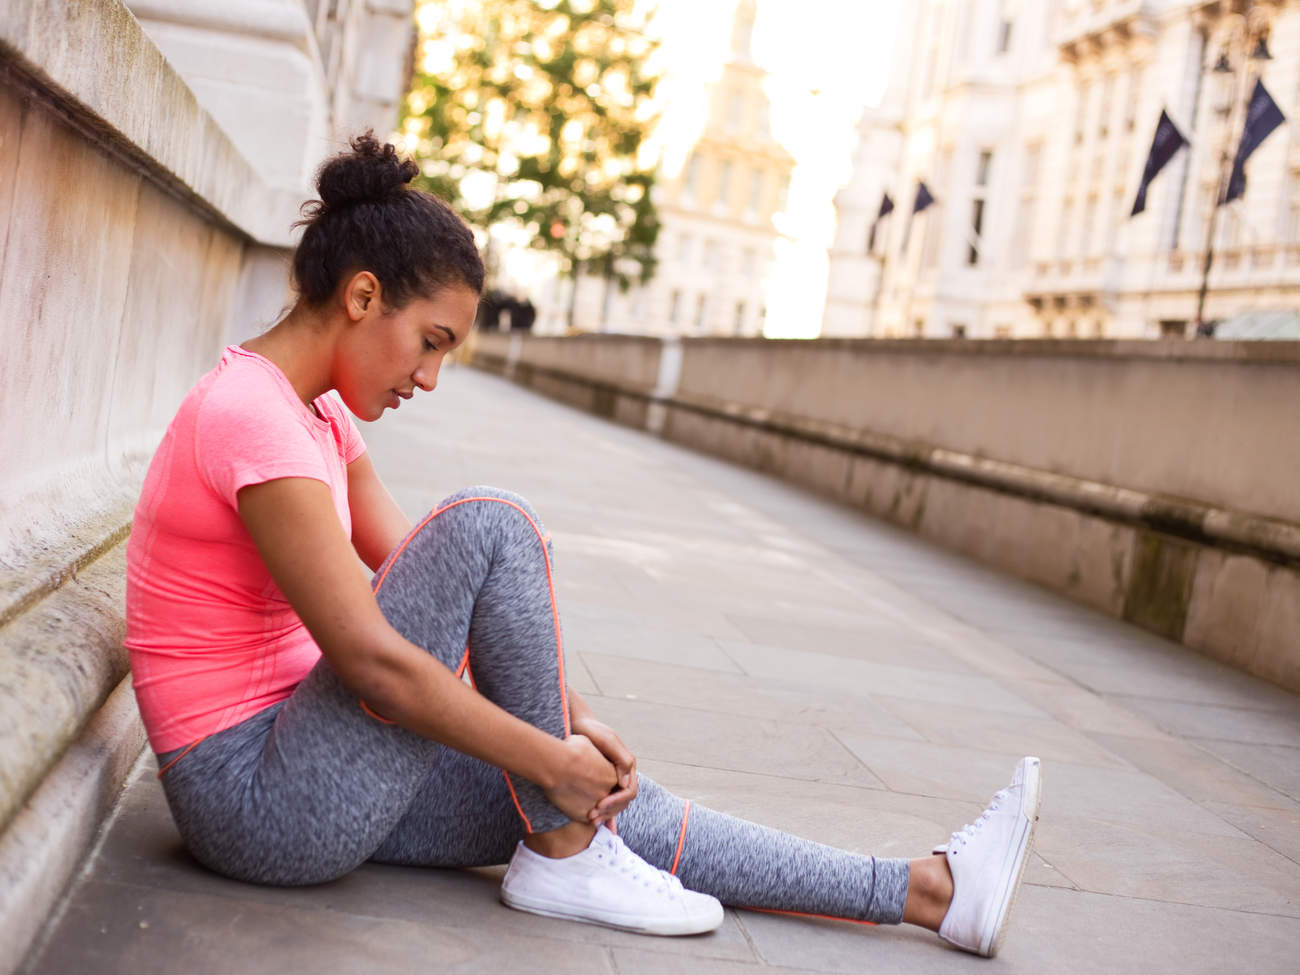 sprain-or-strain-ankle-injury-joint-pain